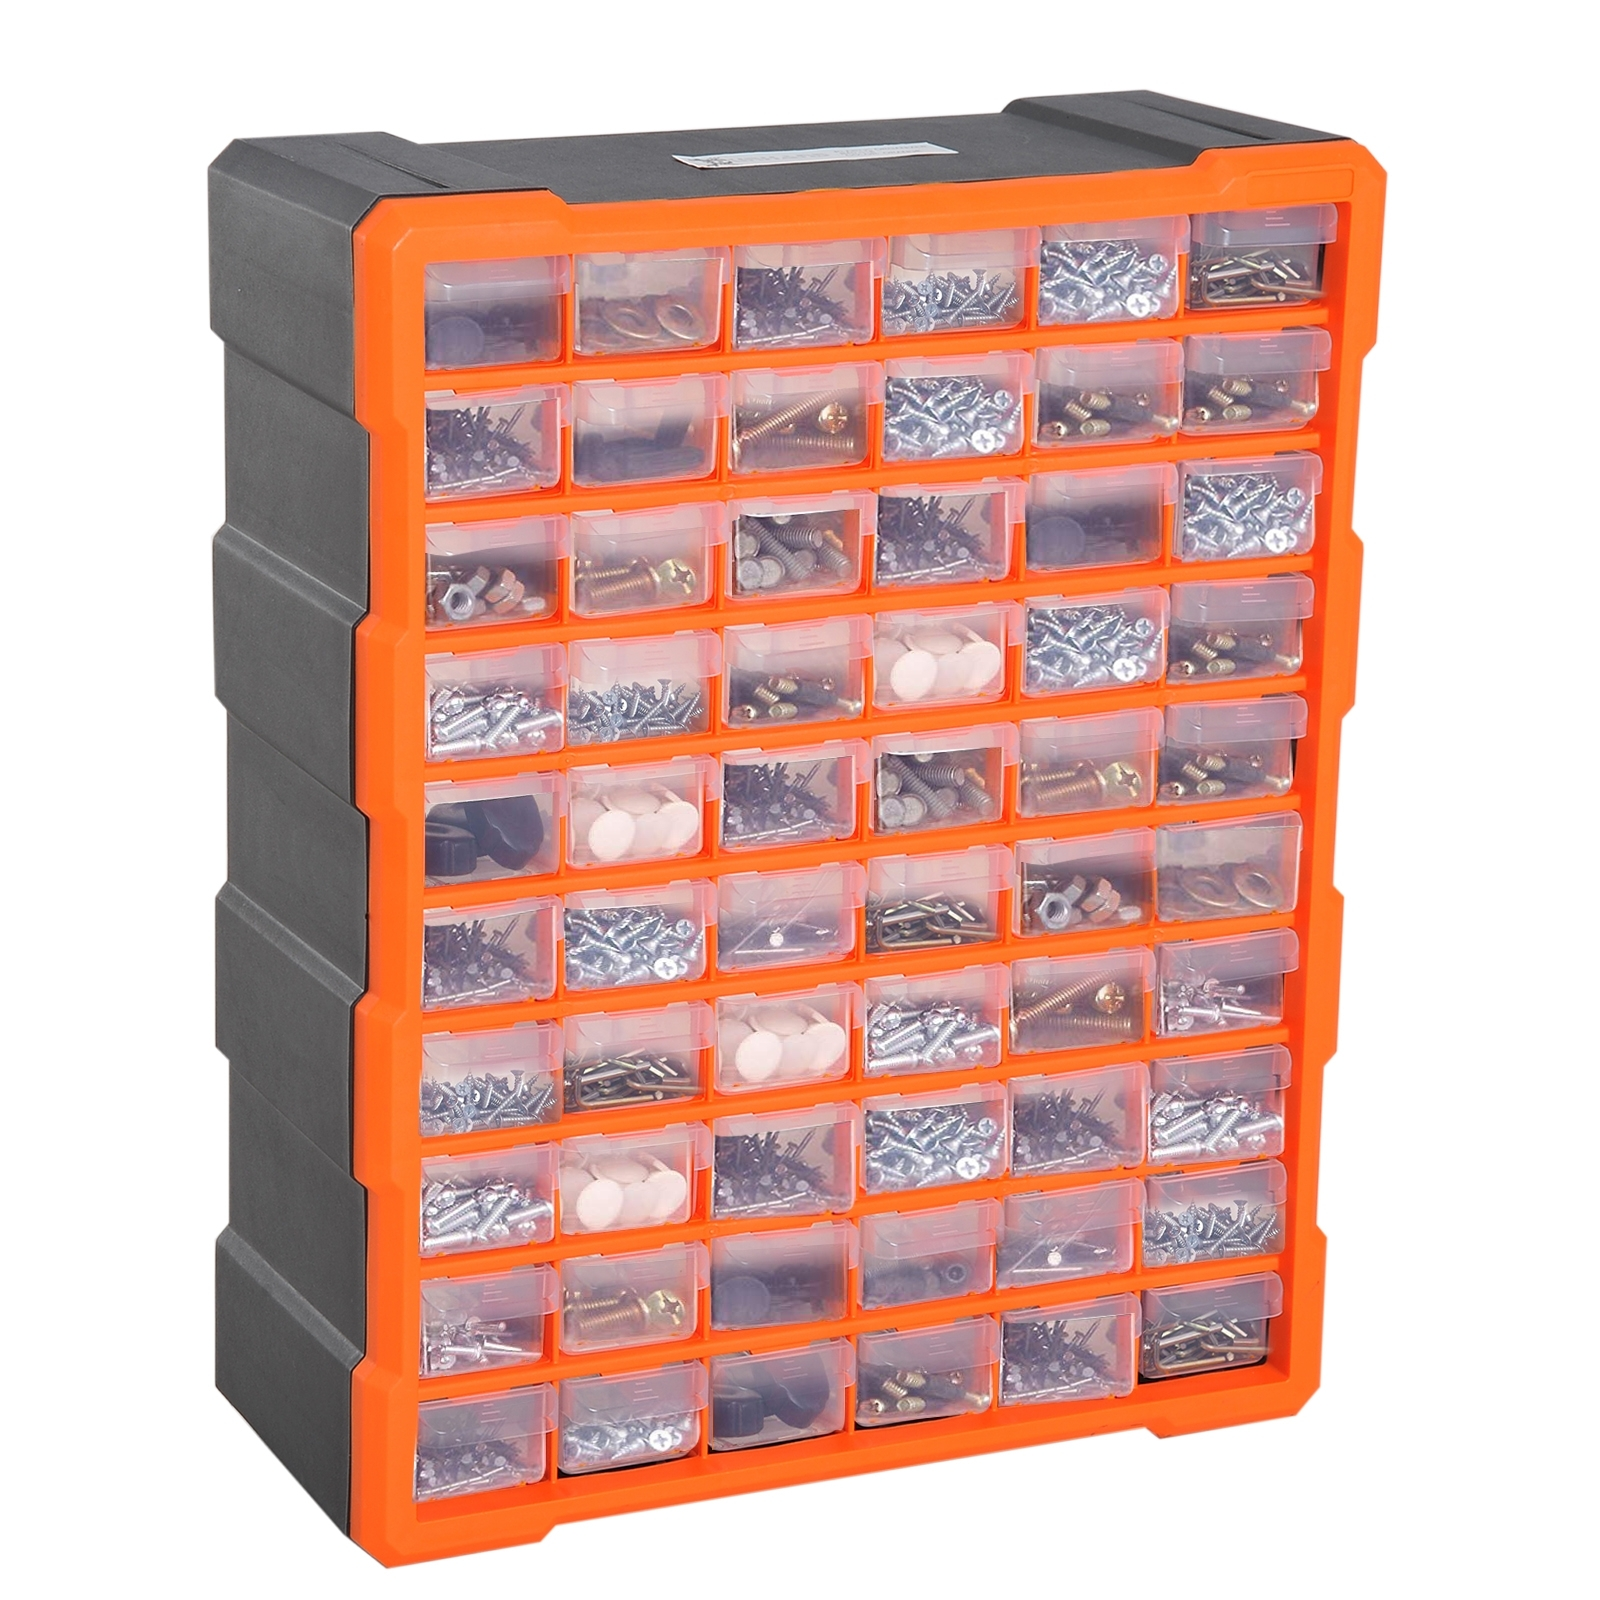 Image of €37,00 DURHAND Casier de Rangement avec 60 Compartiments/Tiroirs Transparents Polypropylène 38 x 16 48 cm Orange / Homcom Module 38L 16l 48H tiroirs Transparent Noir B40-018 3662970041710